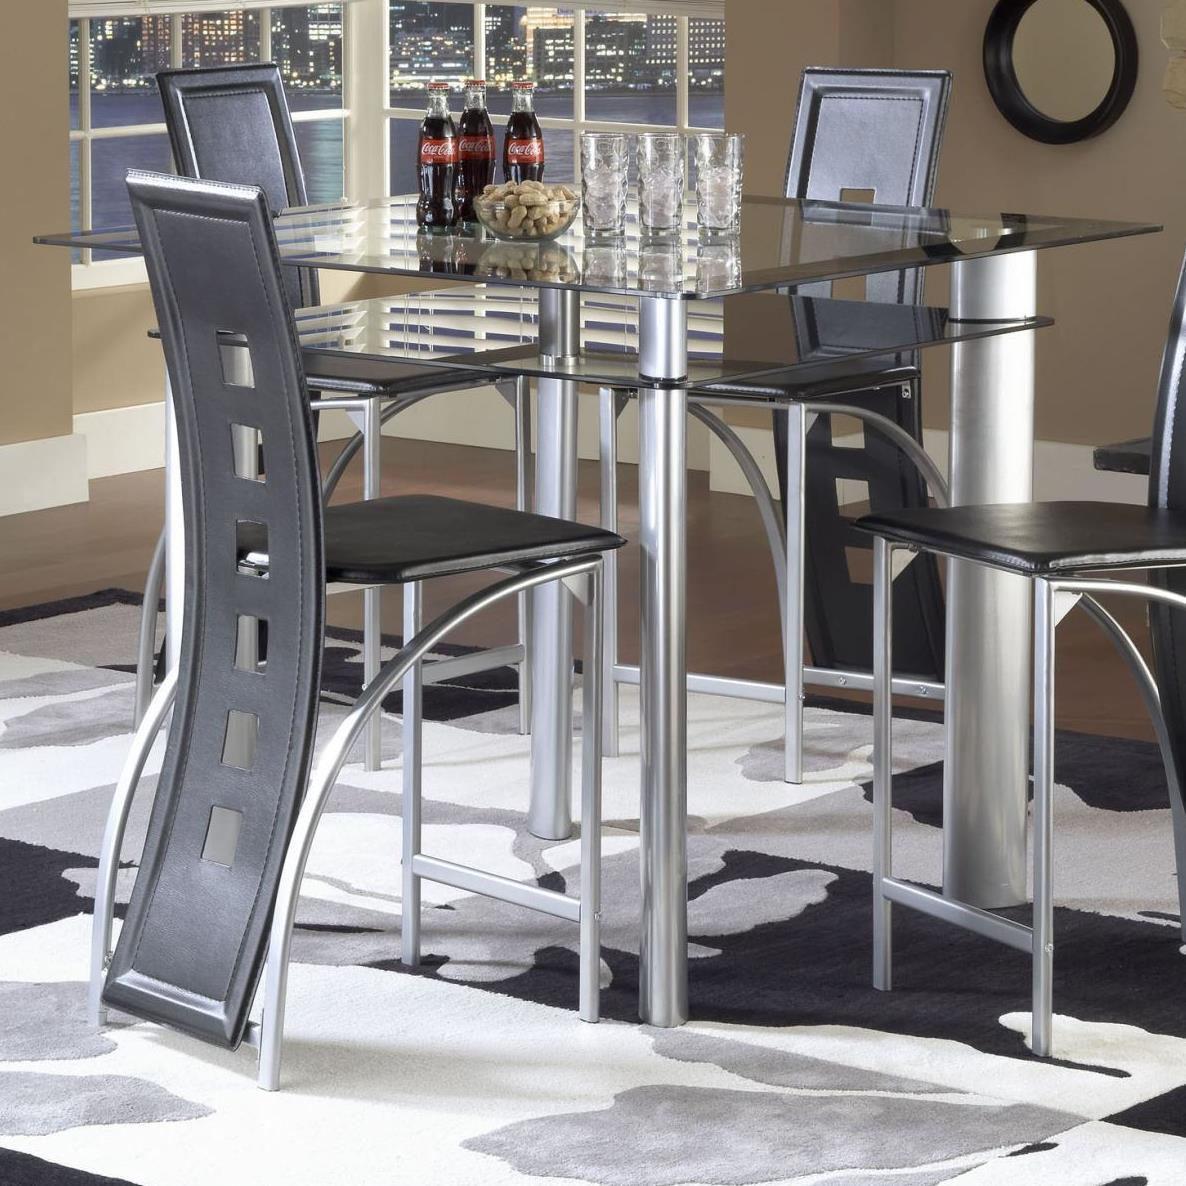 Bernards Astro Pub Table   Black / Satin Silver   Item Number: 4102